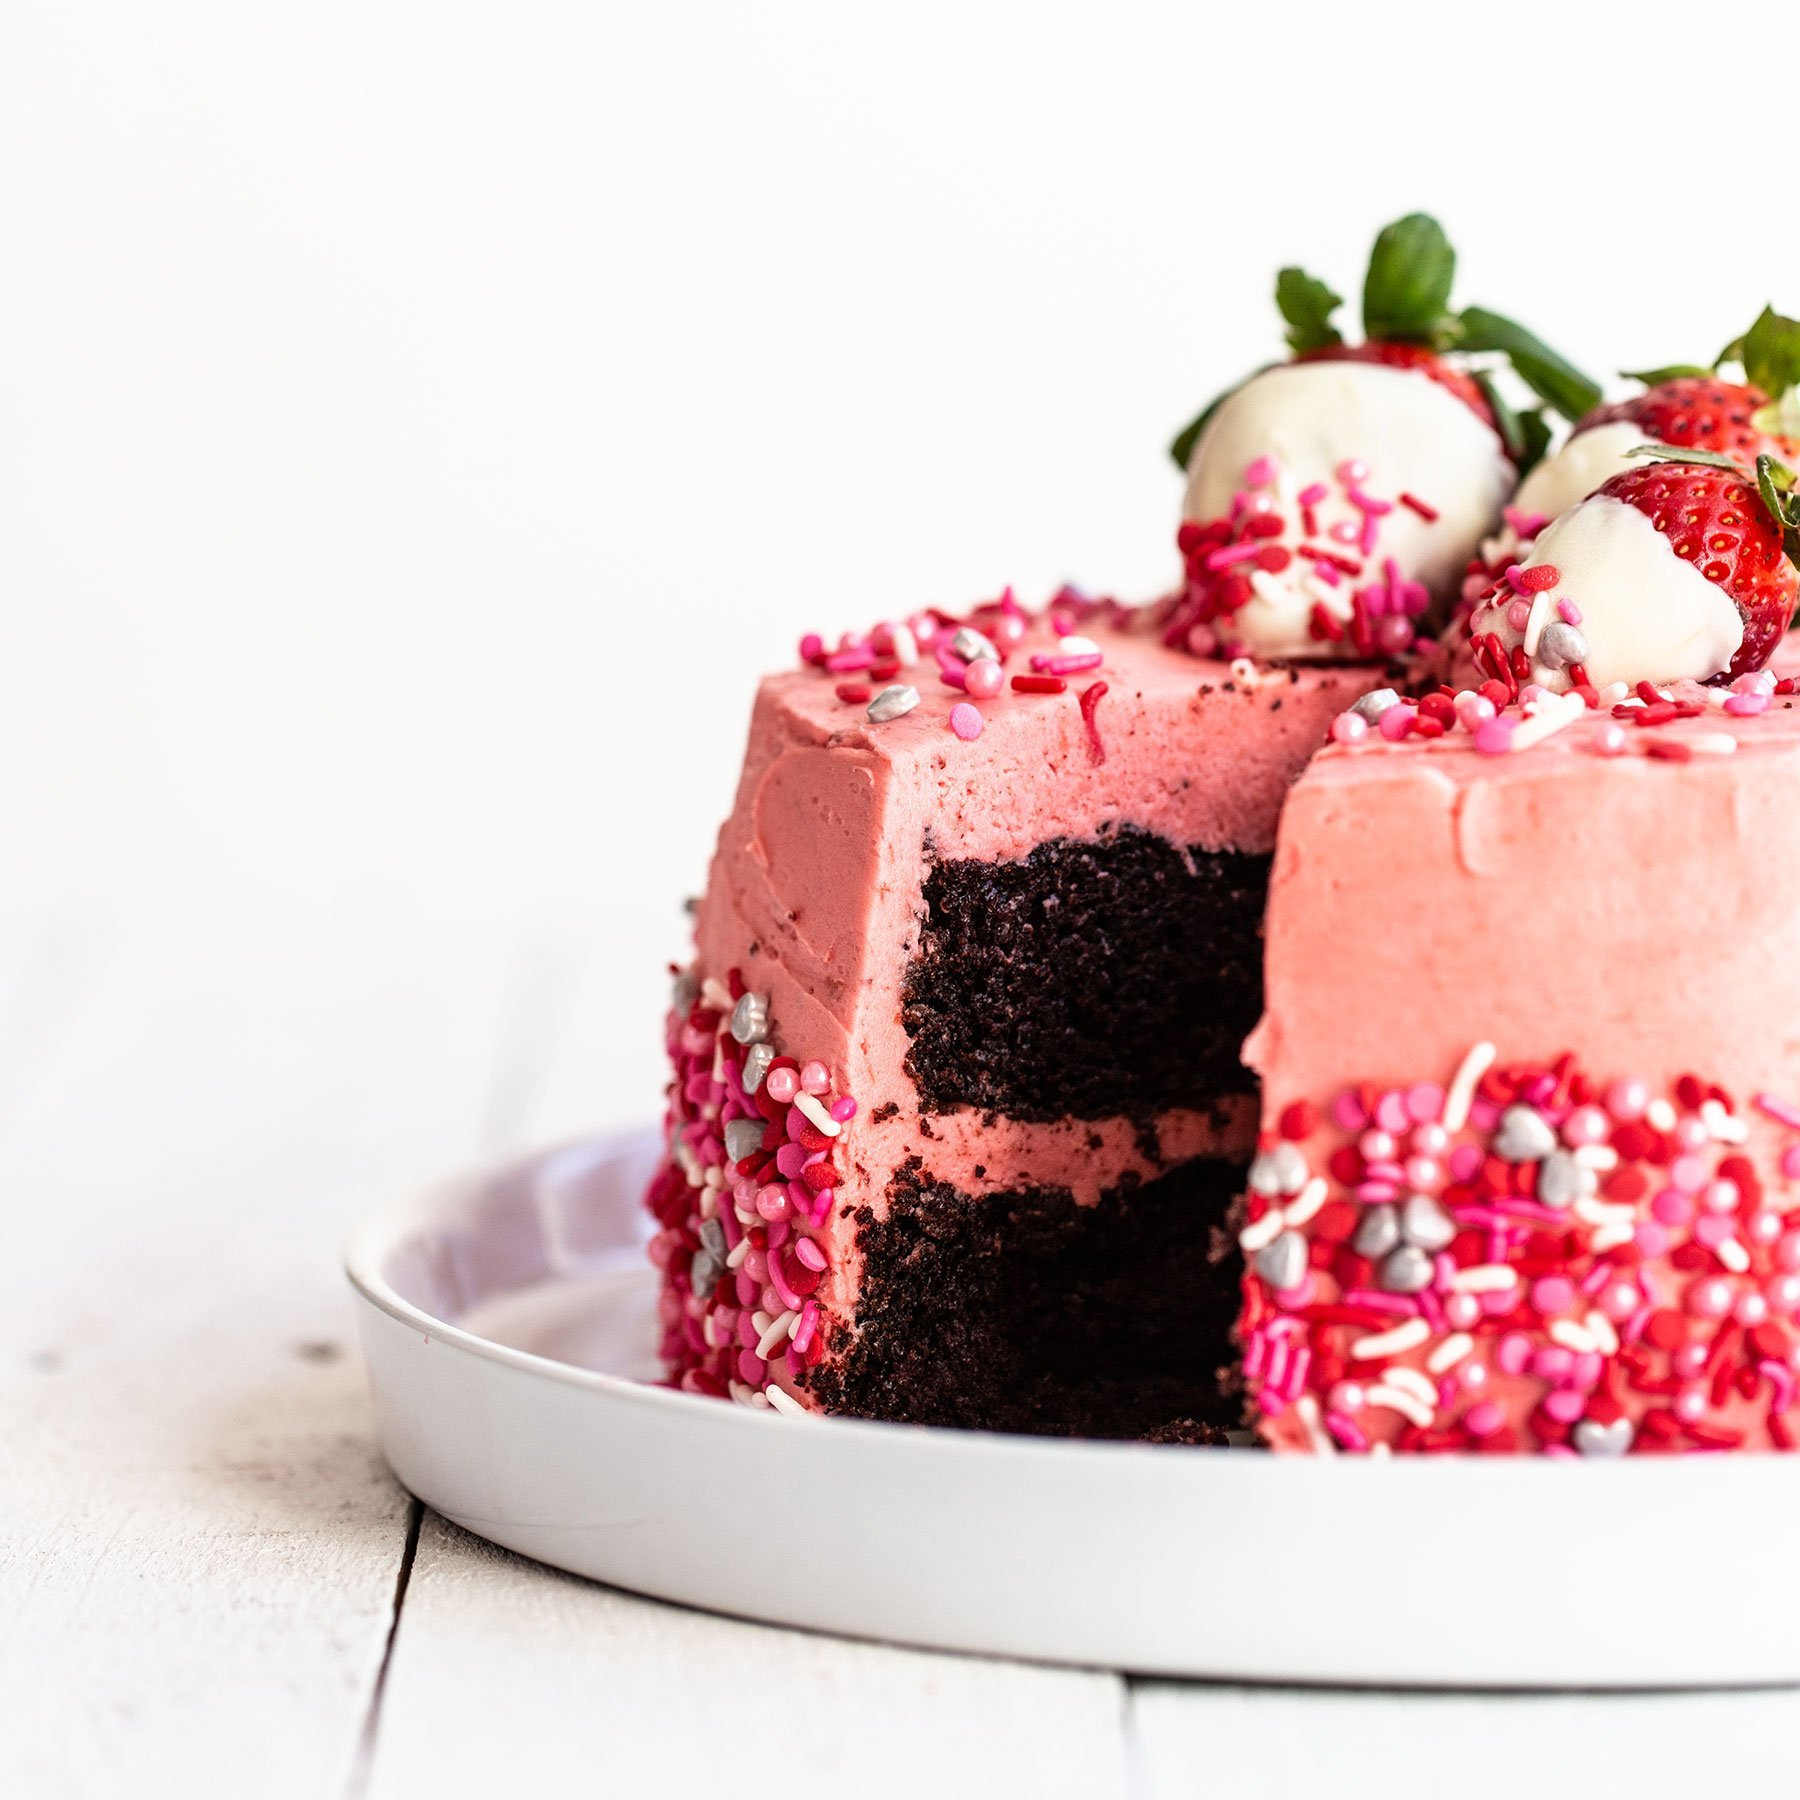 Valentine's Day cake on a cake plate with chocolate covered strawberries on top